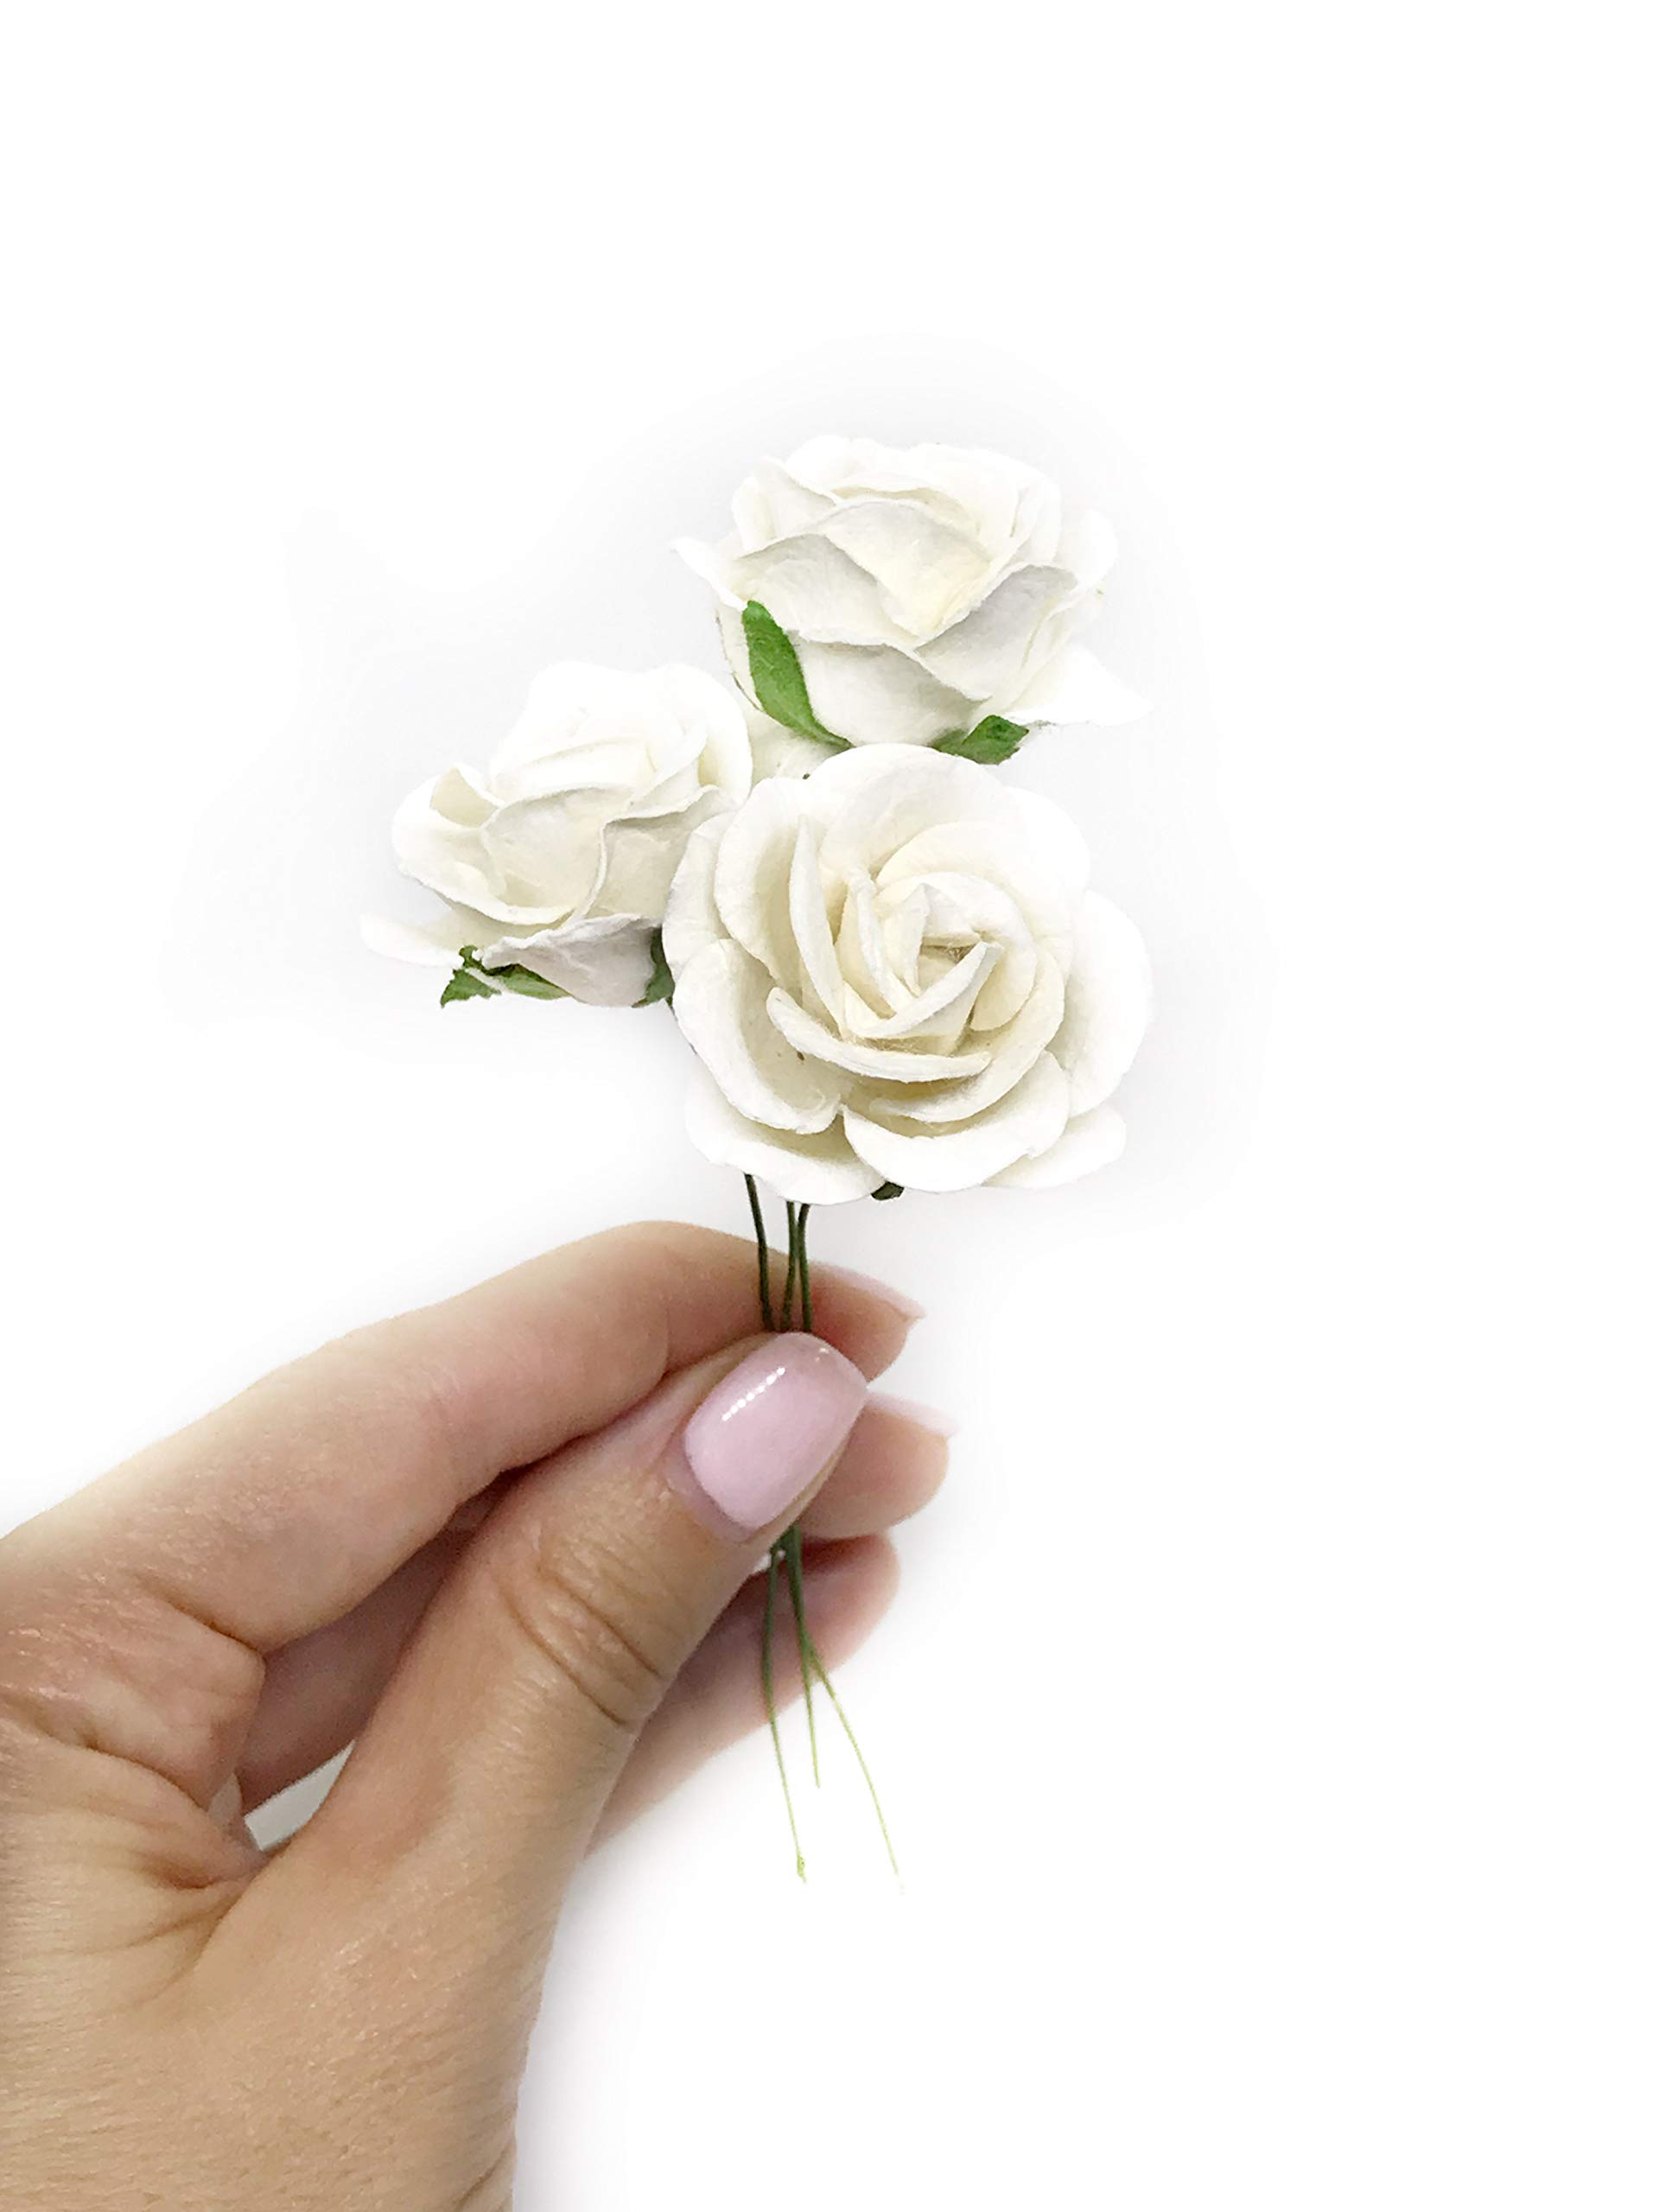 15-White-Paper-Flowers-Paper-Rose-Artificial-Flowers-Fake-Flowers-Artificial-Roses-Paper-Craft-Flowers-Paper-Rose-Flower-Mulberry-Paper-Flowers-12-Pieces